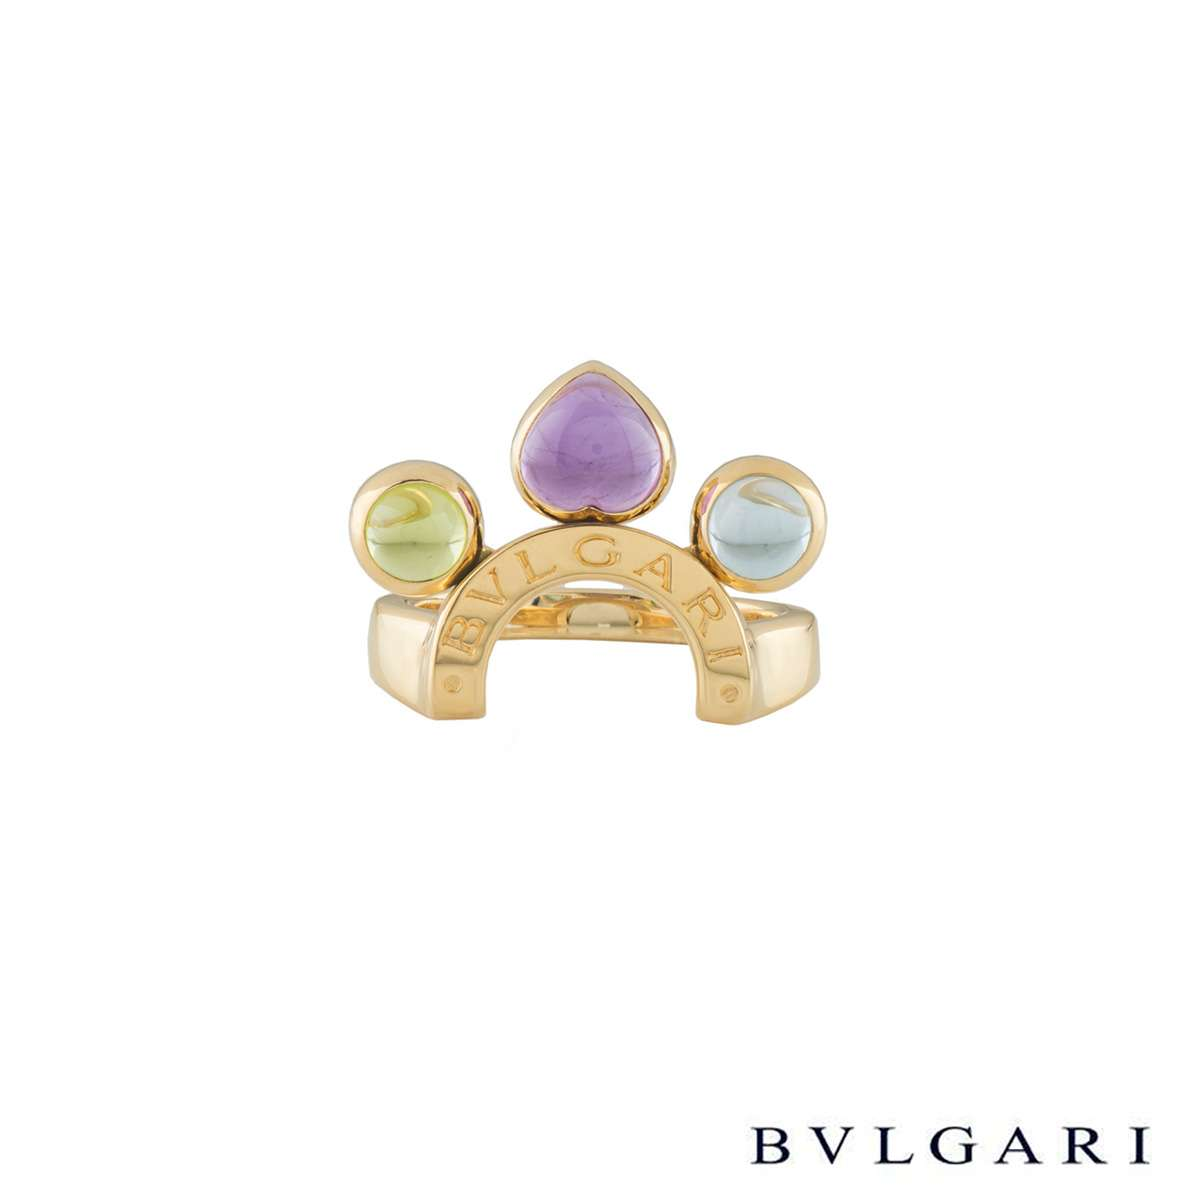 Bvlgari Yellow Gold Multi-Gemstone Allegra Ring